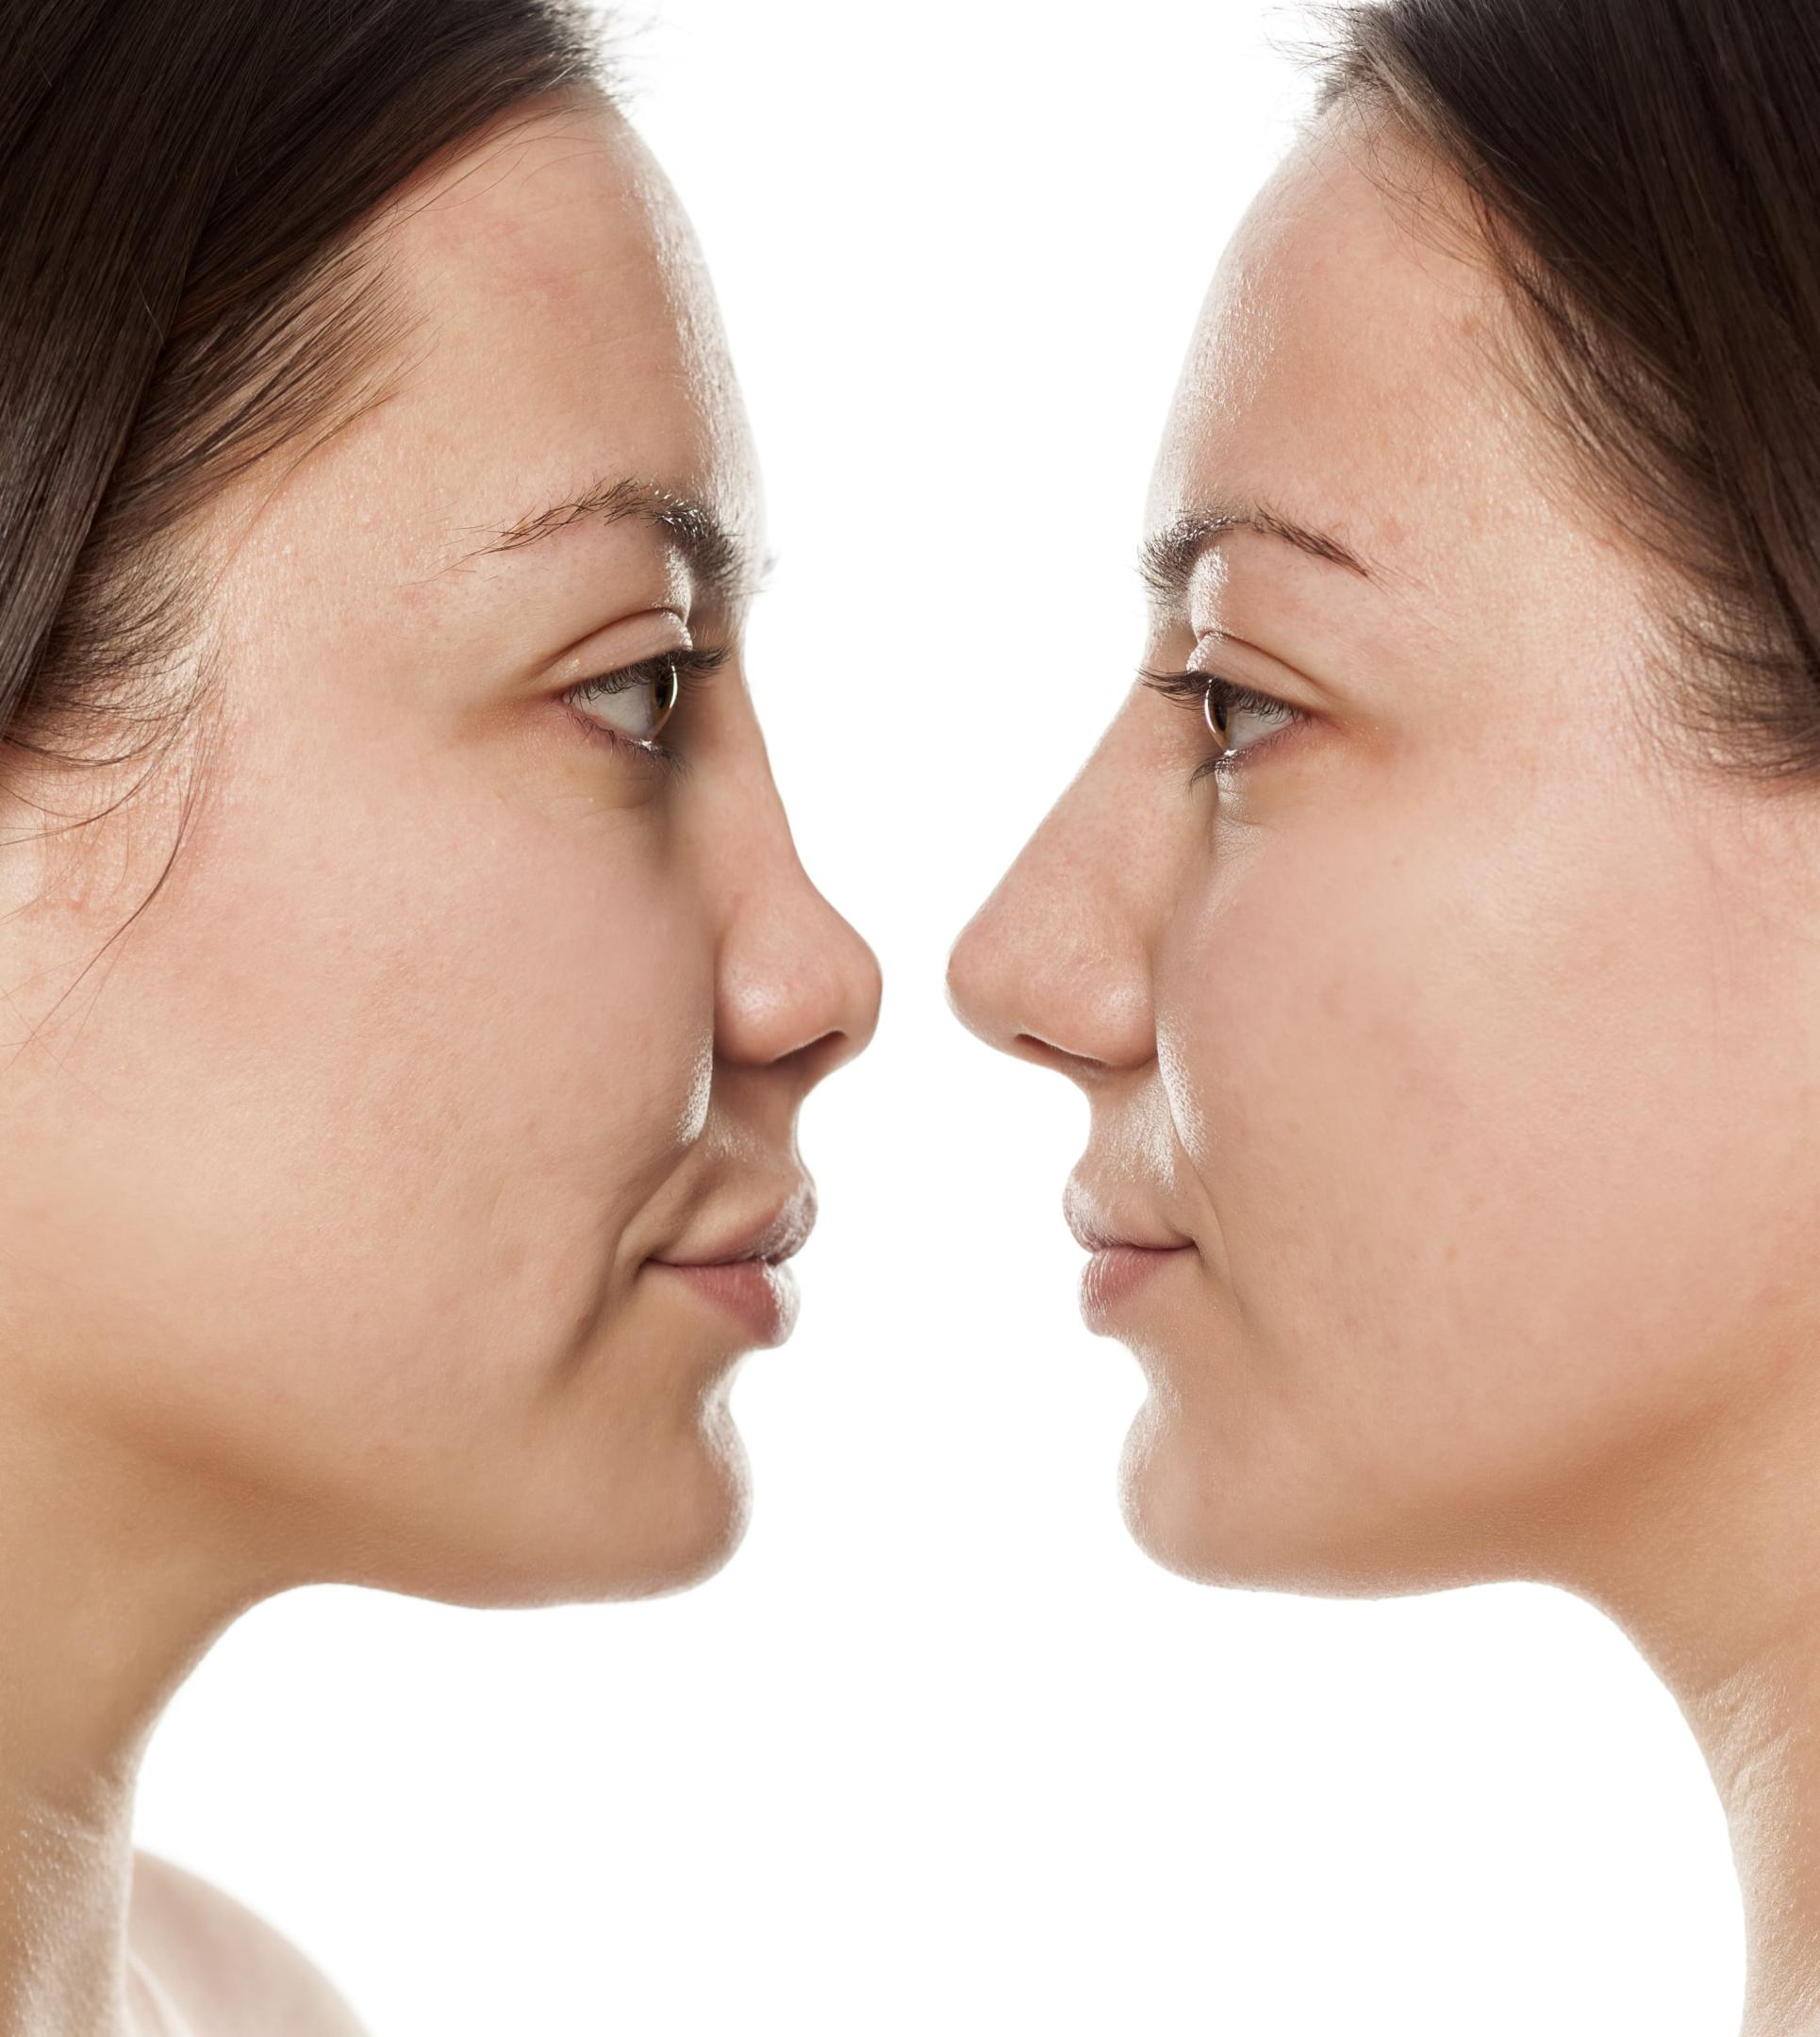 Pictures Of Face Plastic Surgery Before And After photo - 1